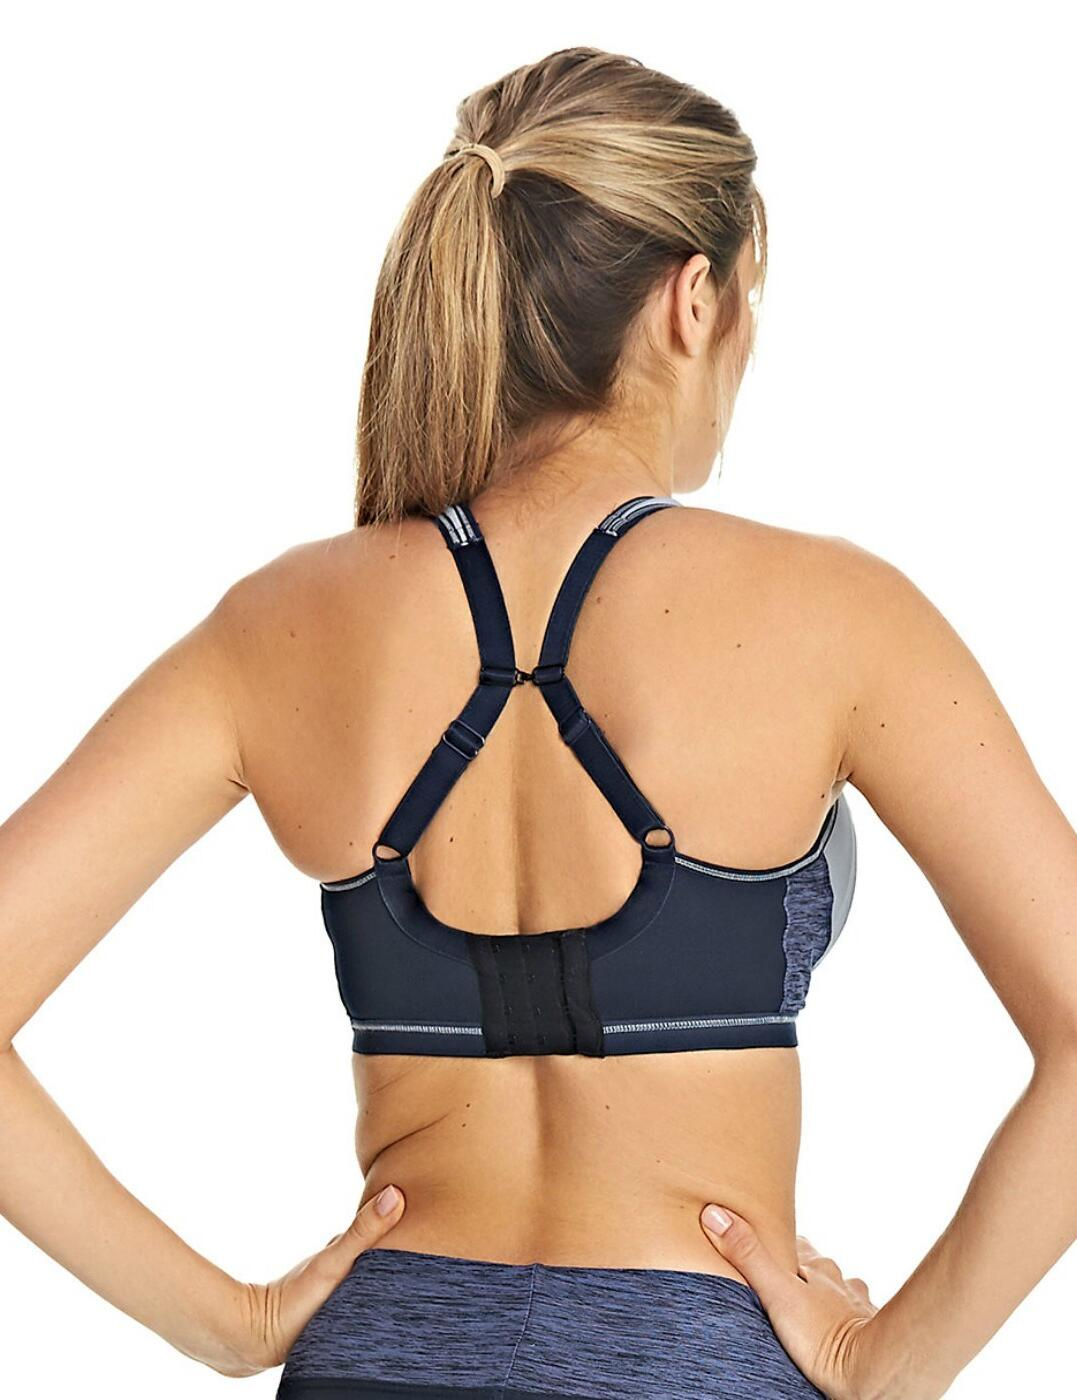 Freya-Active-Epic-Sports-Bra-4004-Underwired-Padded-Moulded-High-Impact-Gym-Bra thumbnail 5